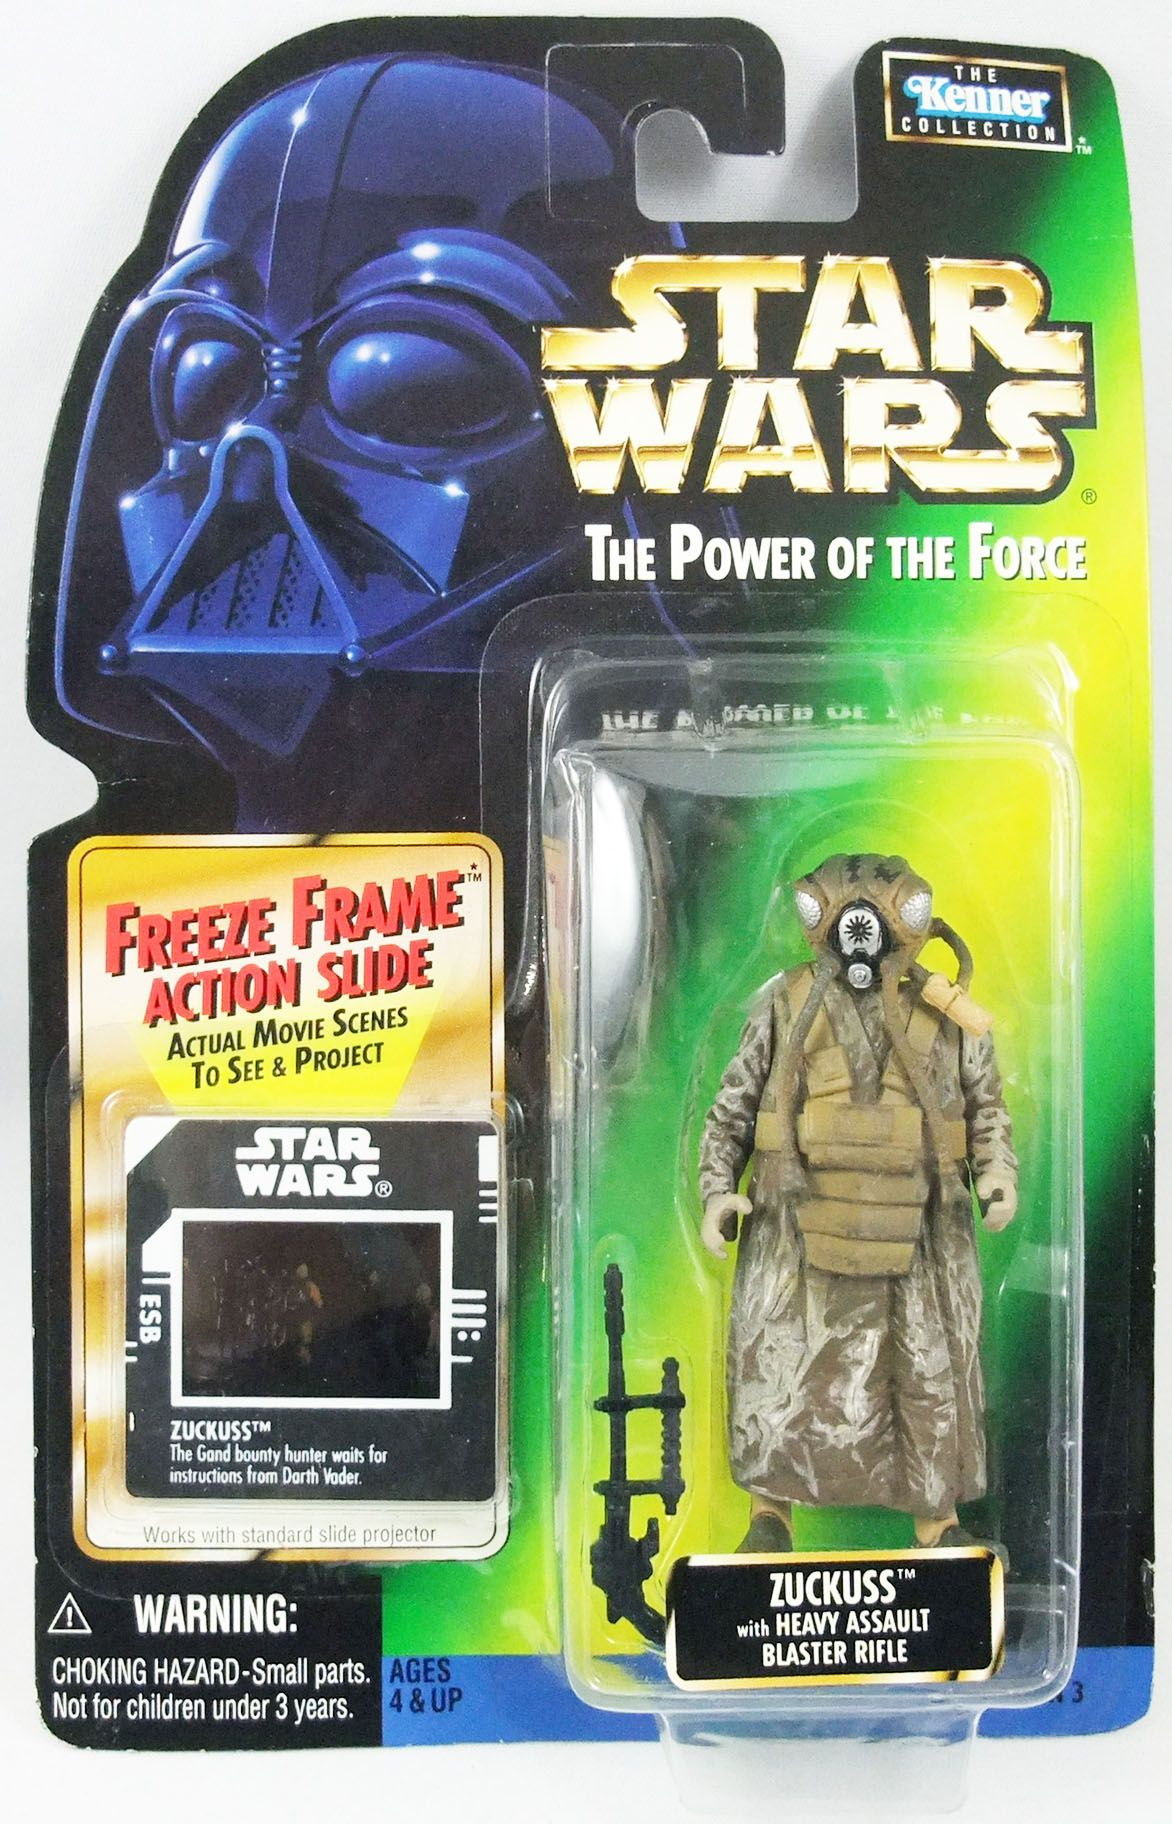 Star Wars (The Power of the Force) - Kenner - Zuckuss